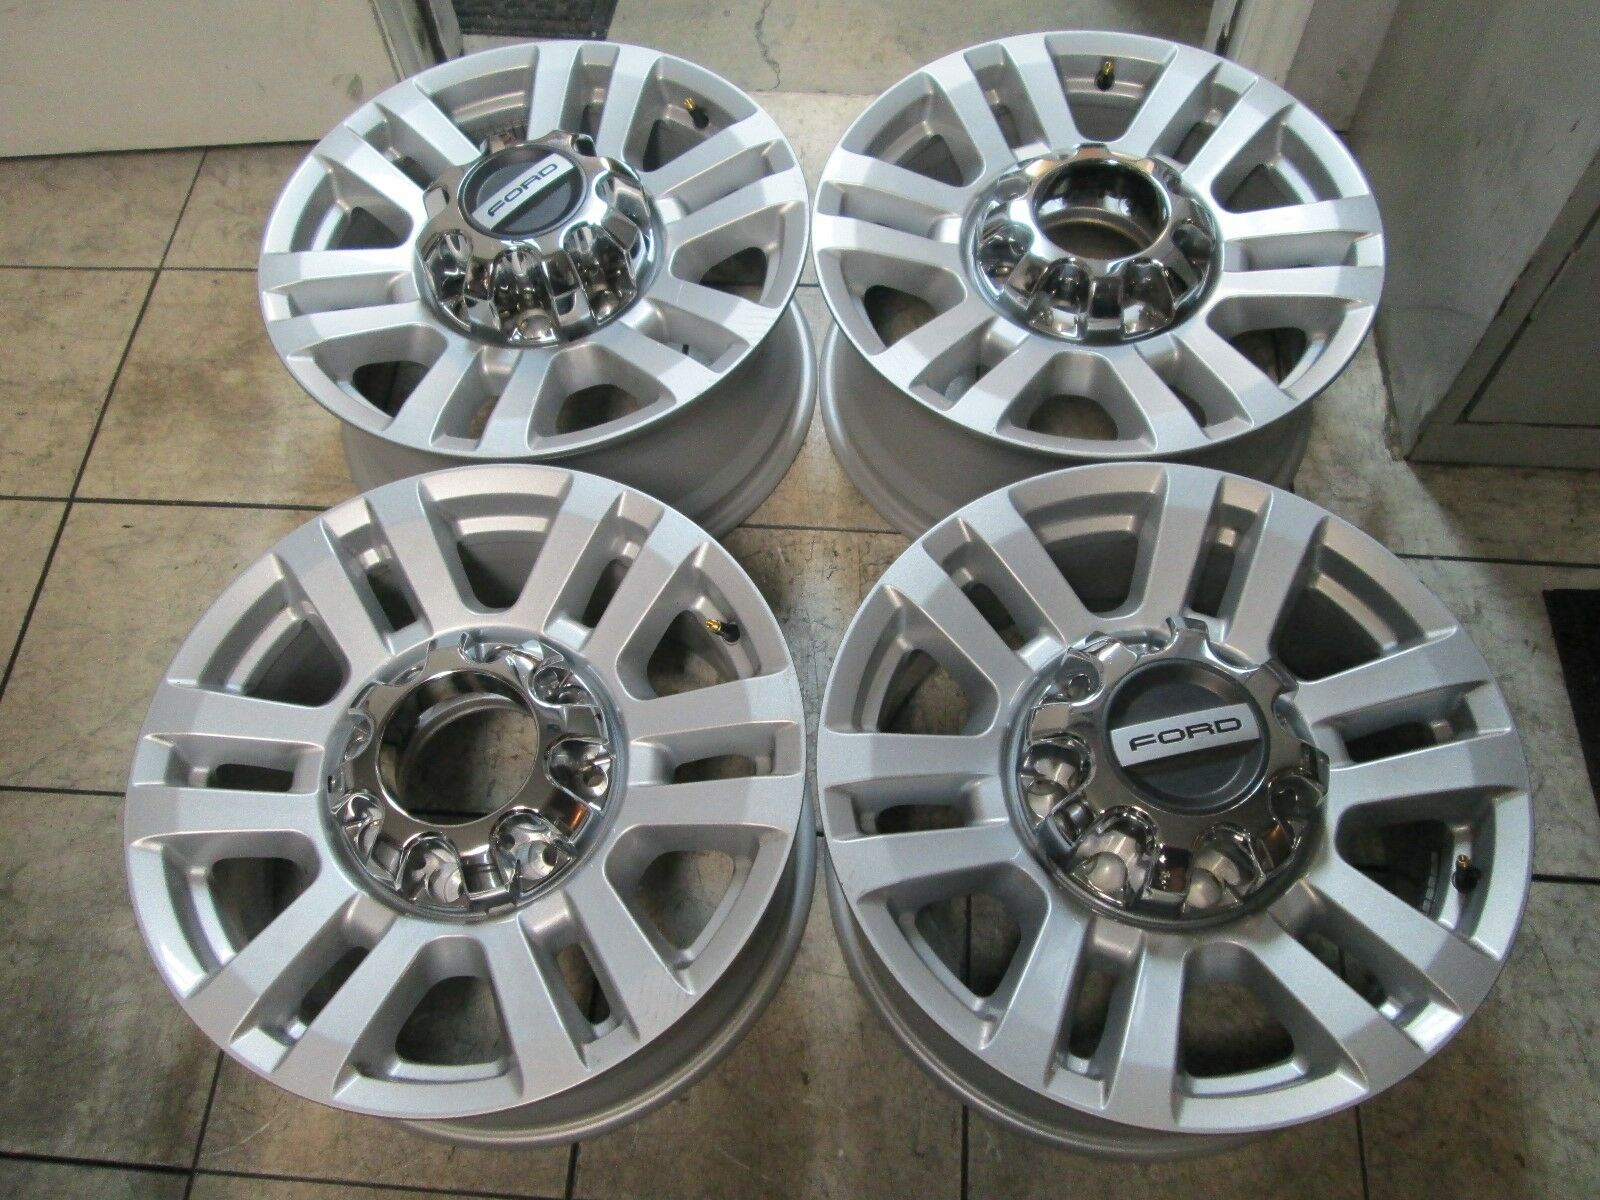 Used Ford Wheels & Hubcaps for Sale